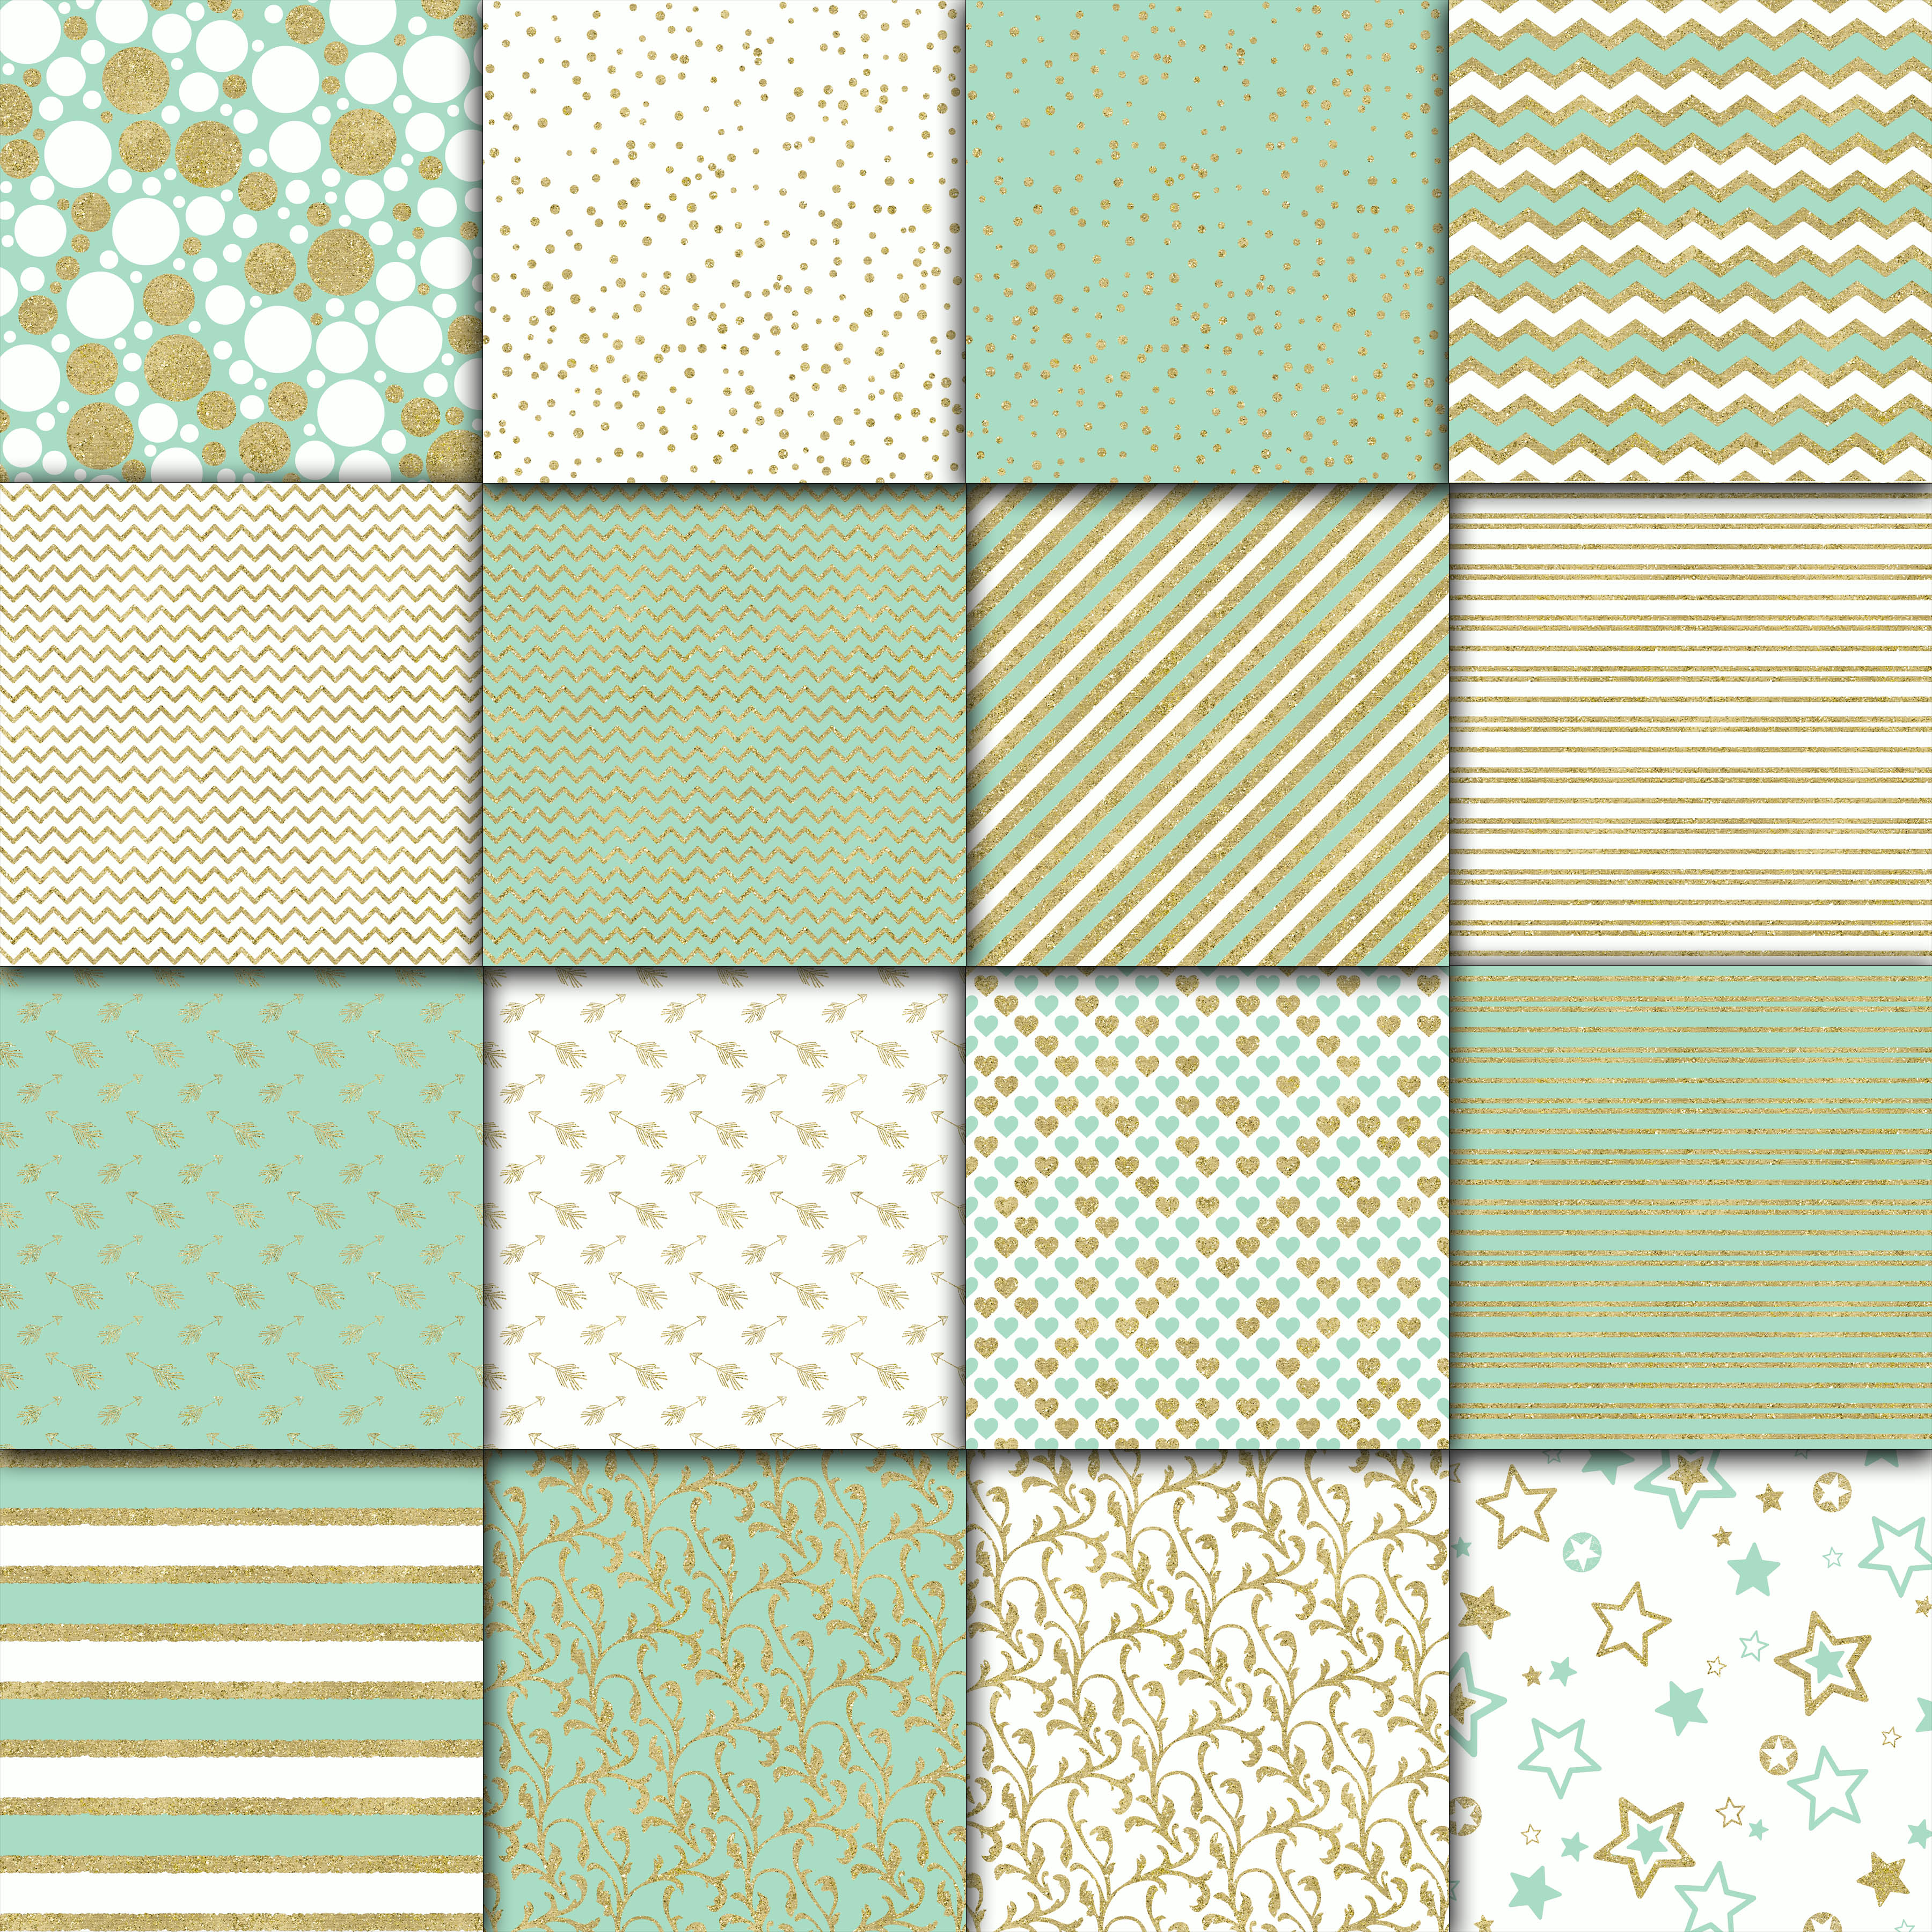 Mint and Gold Digital Paper example image 3